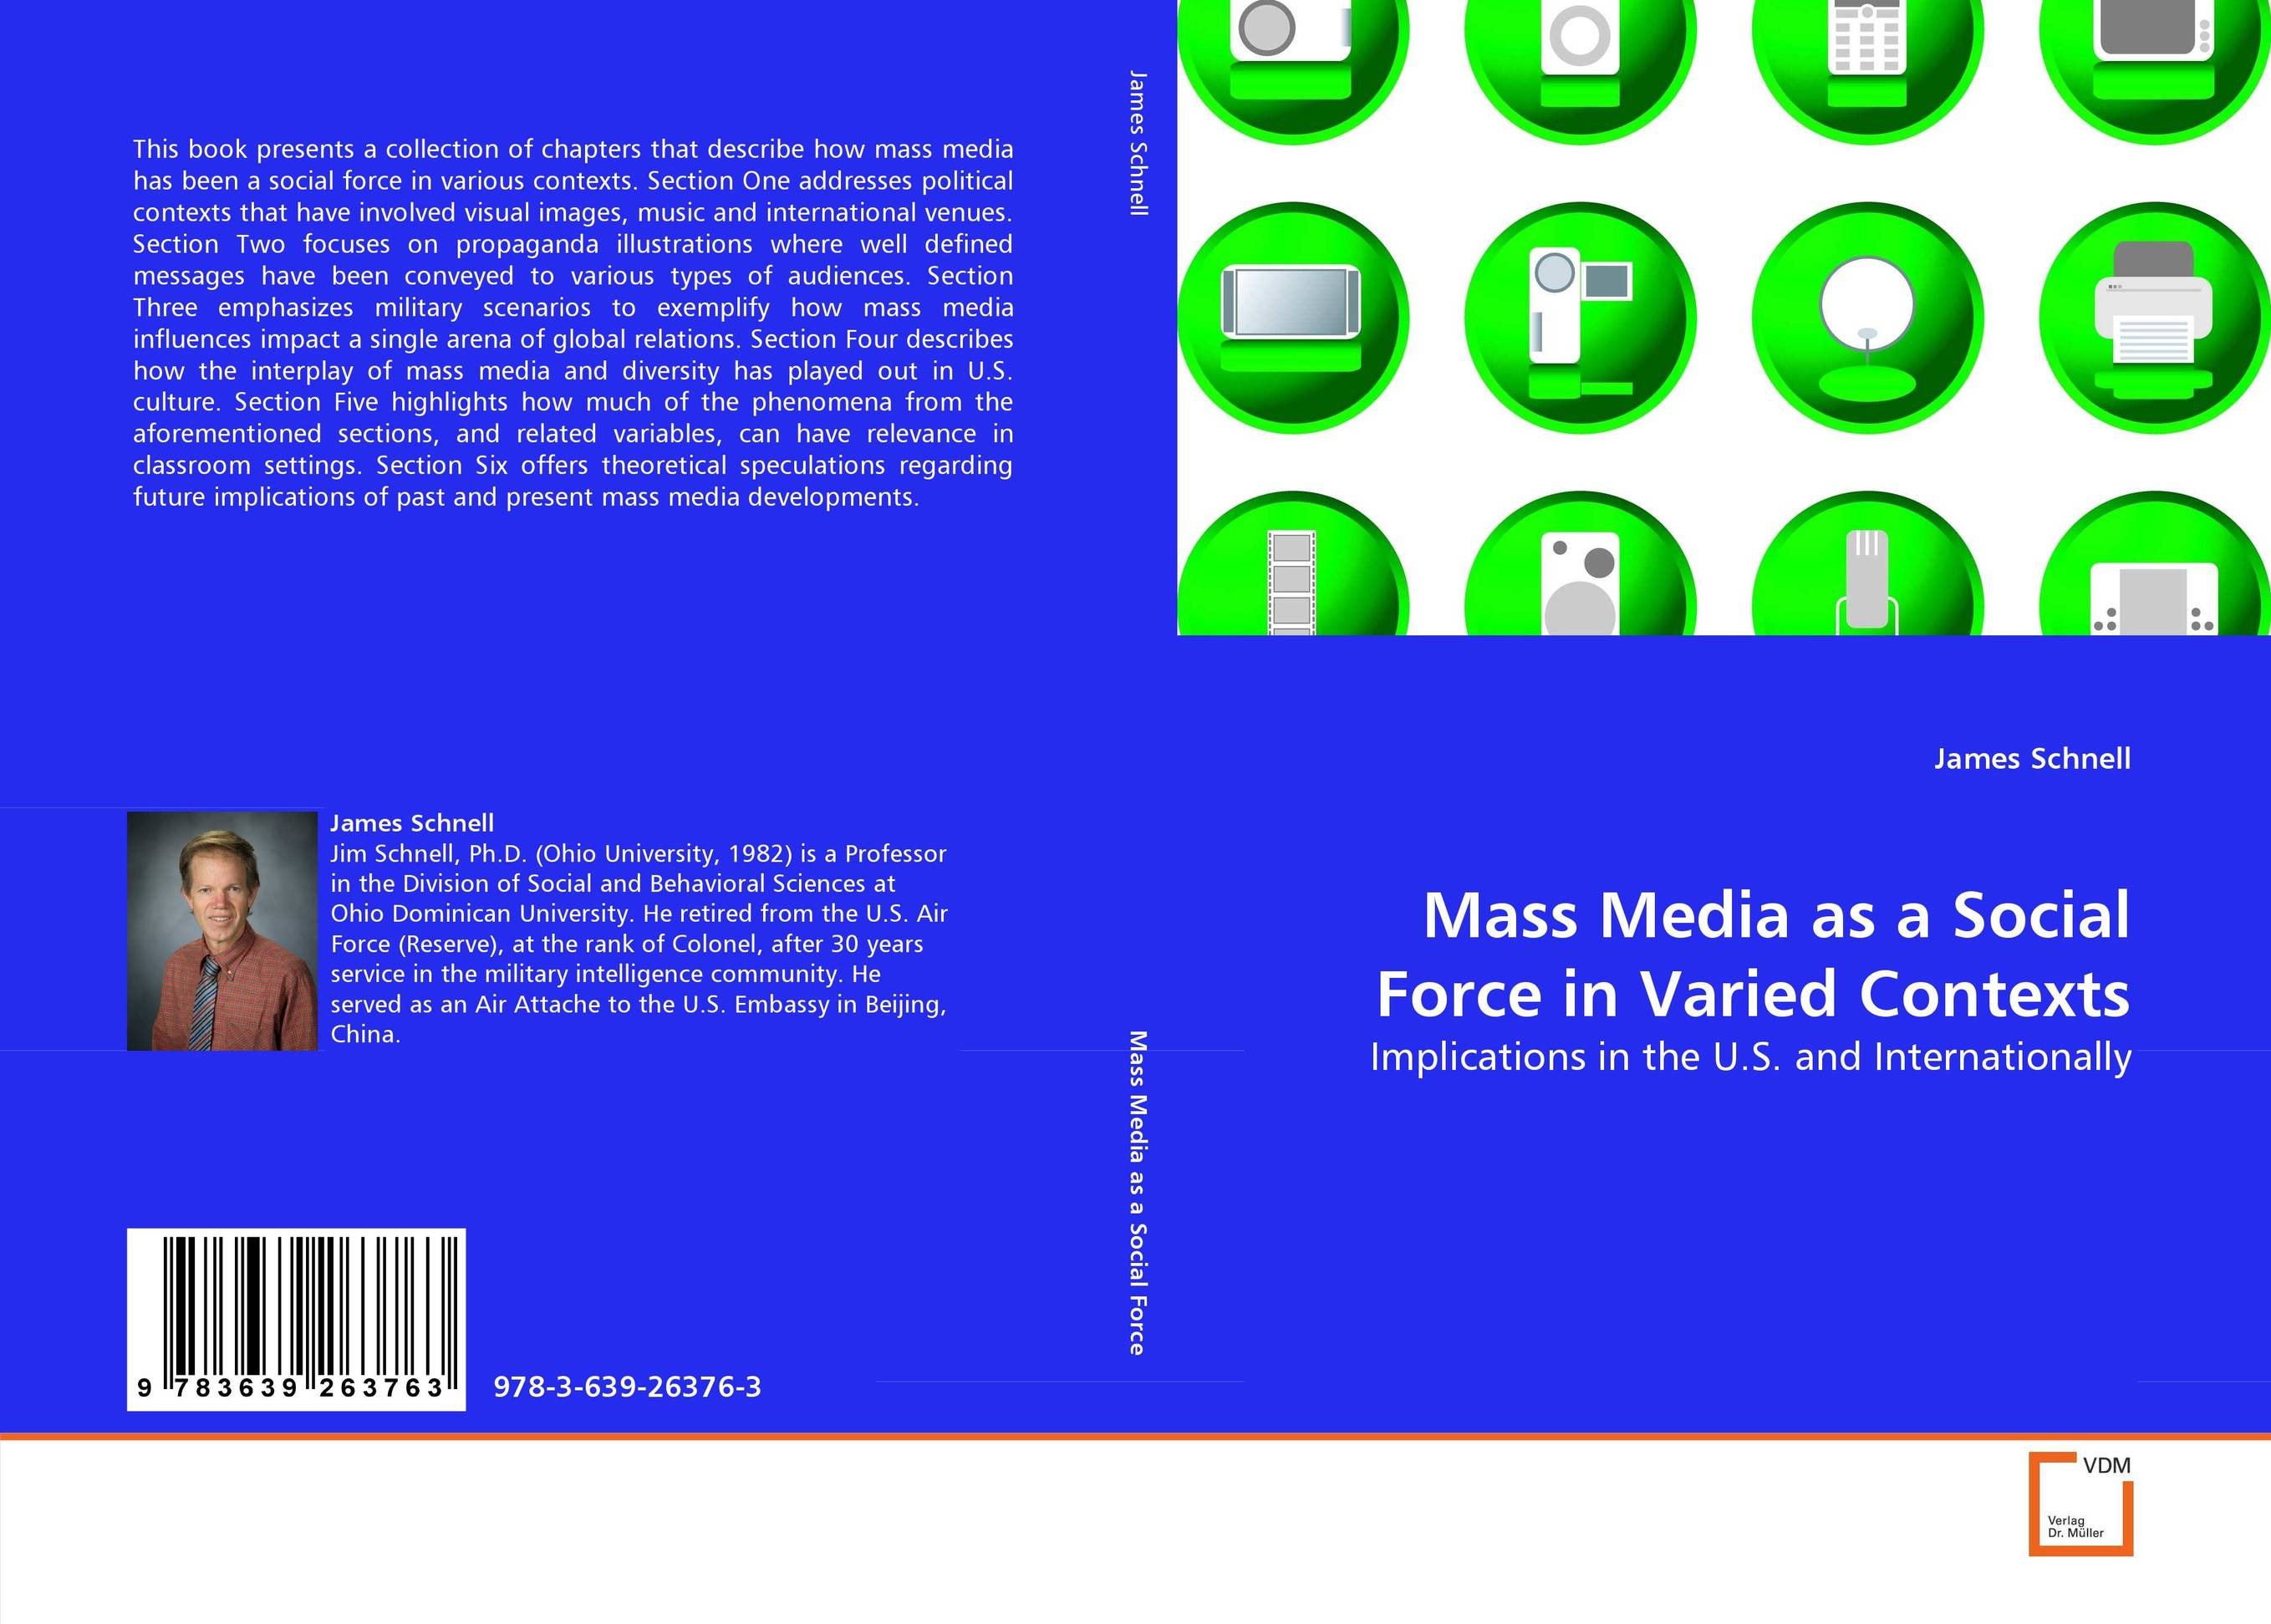 Mass Media as a Social Force in Varied Contexts shakespeare after mass media [9780312294540]